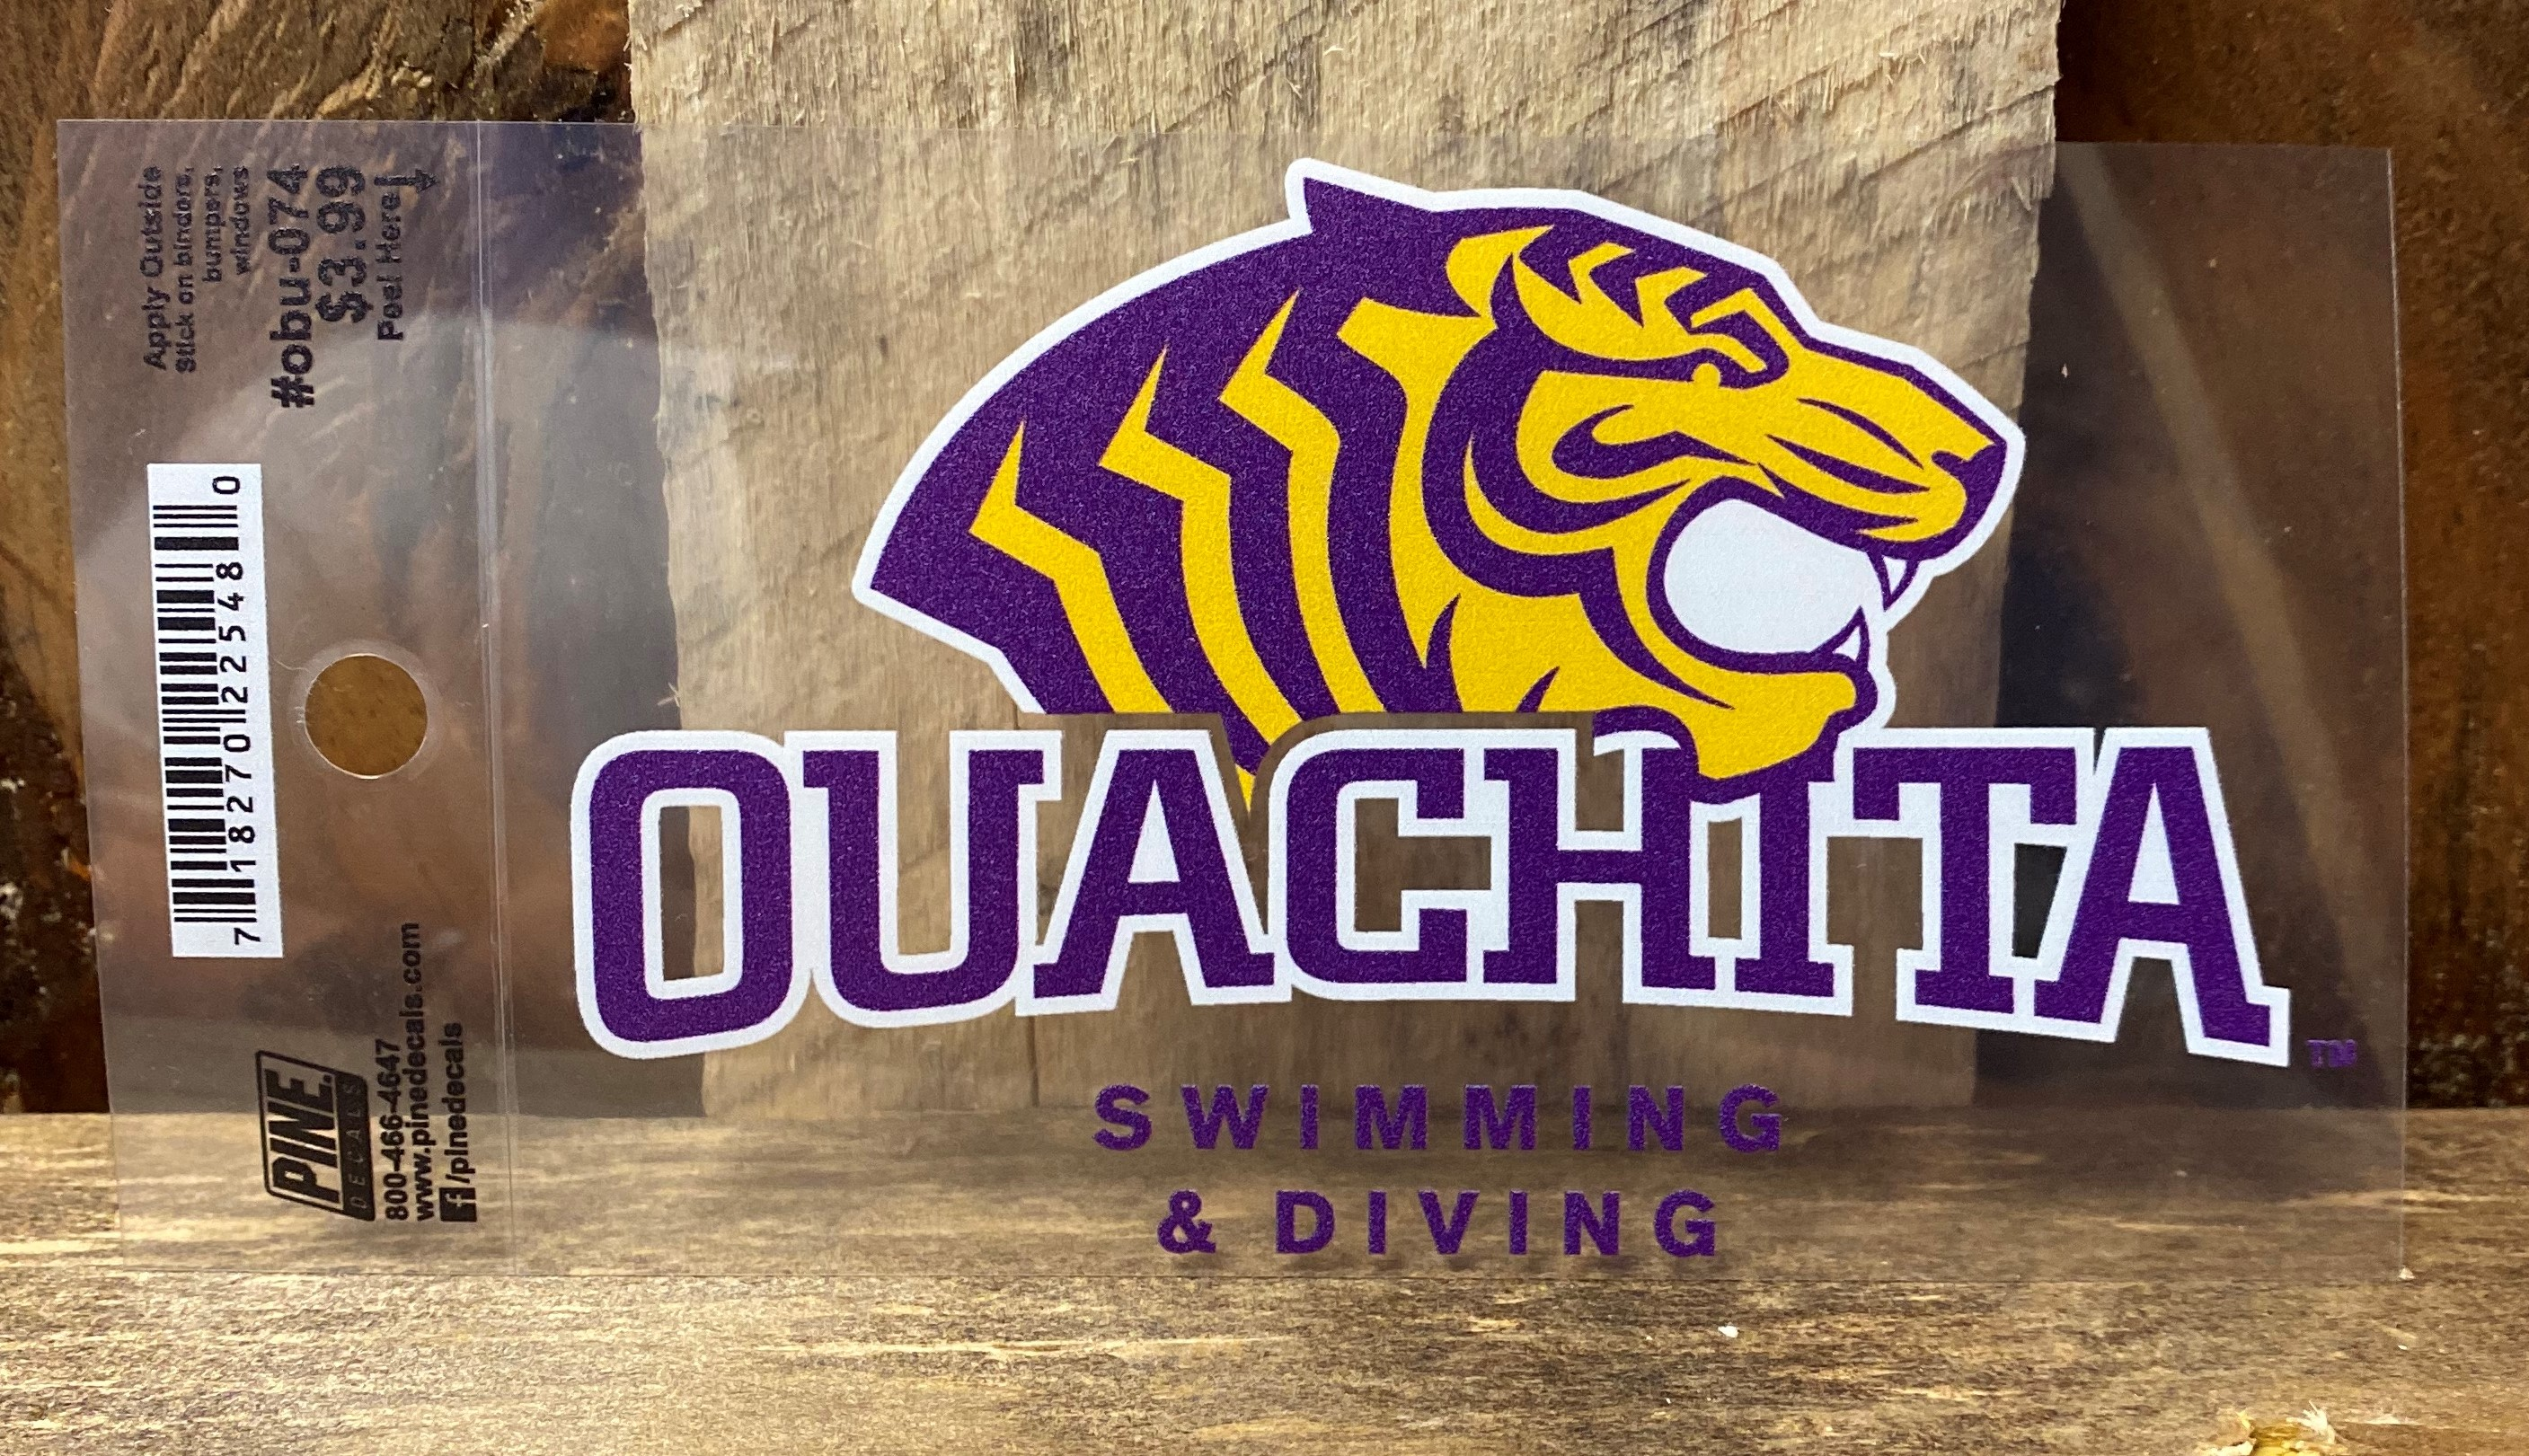 OUACHITA SWIMMING AND DIVING CAR DECAL